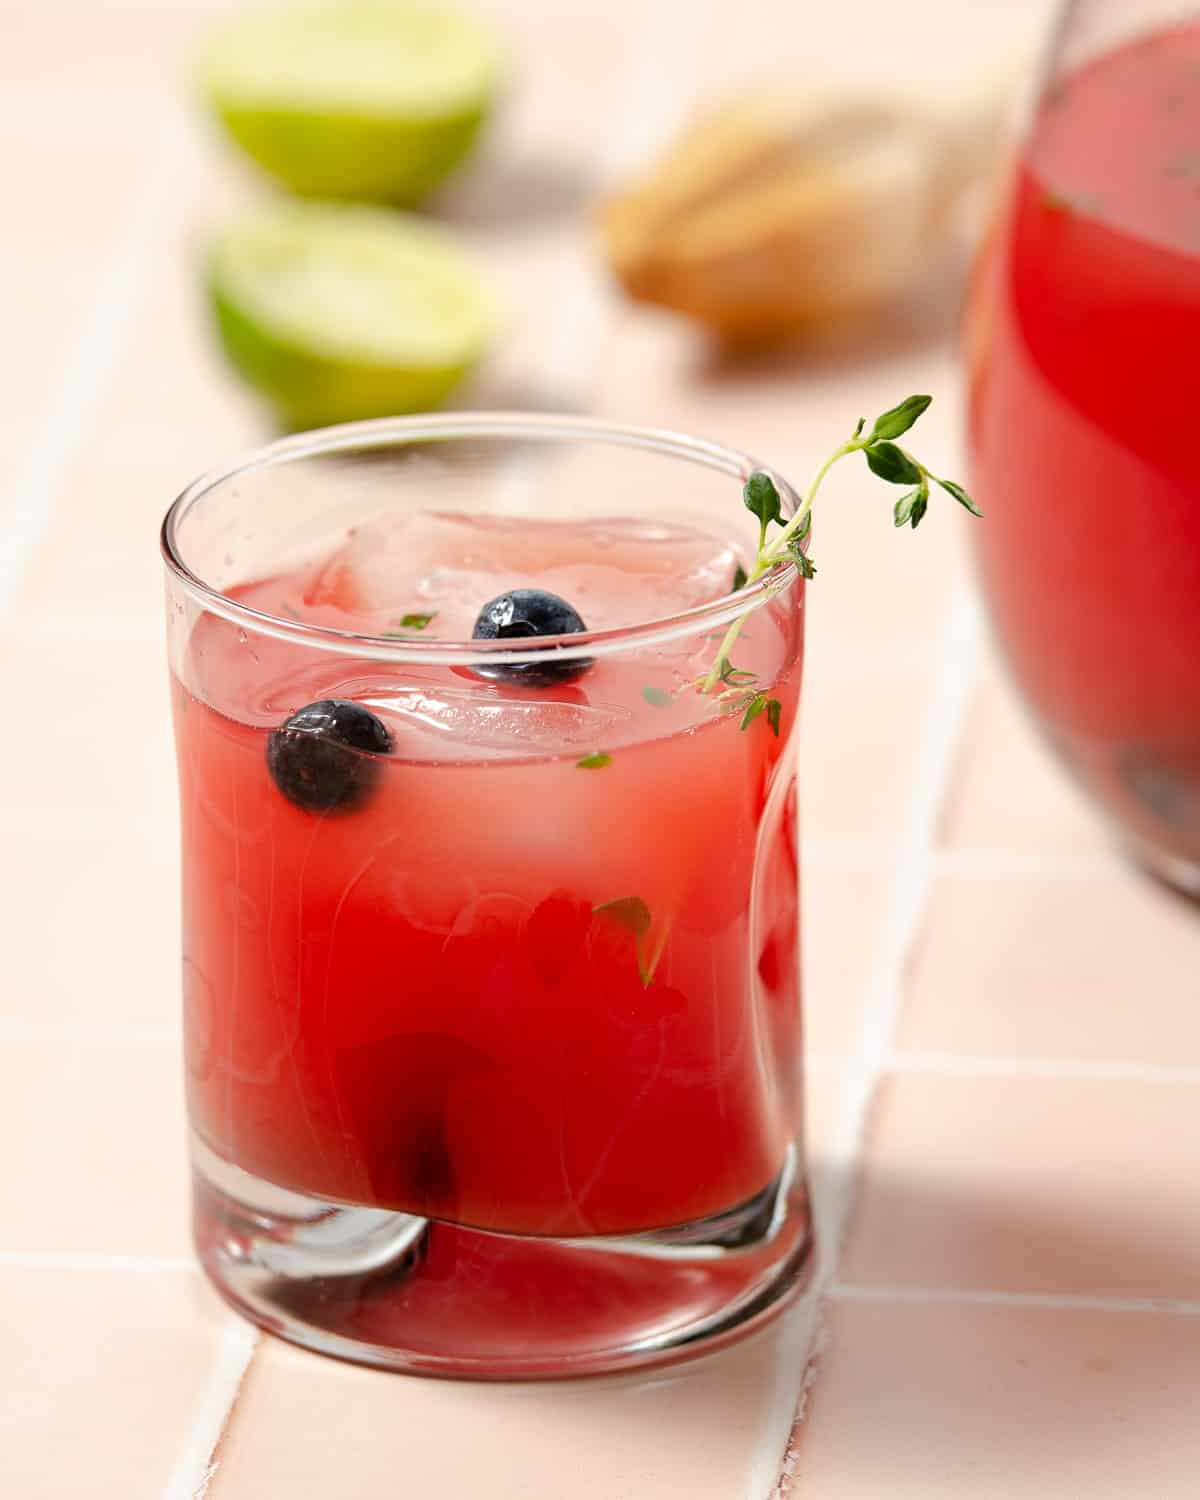 a close up of a glass of watermelon vodka punch with some blueberries and thyme decorating the glass. A large pitcher to the back right and two squeezed limes to the left